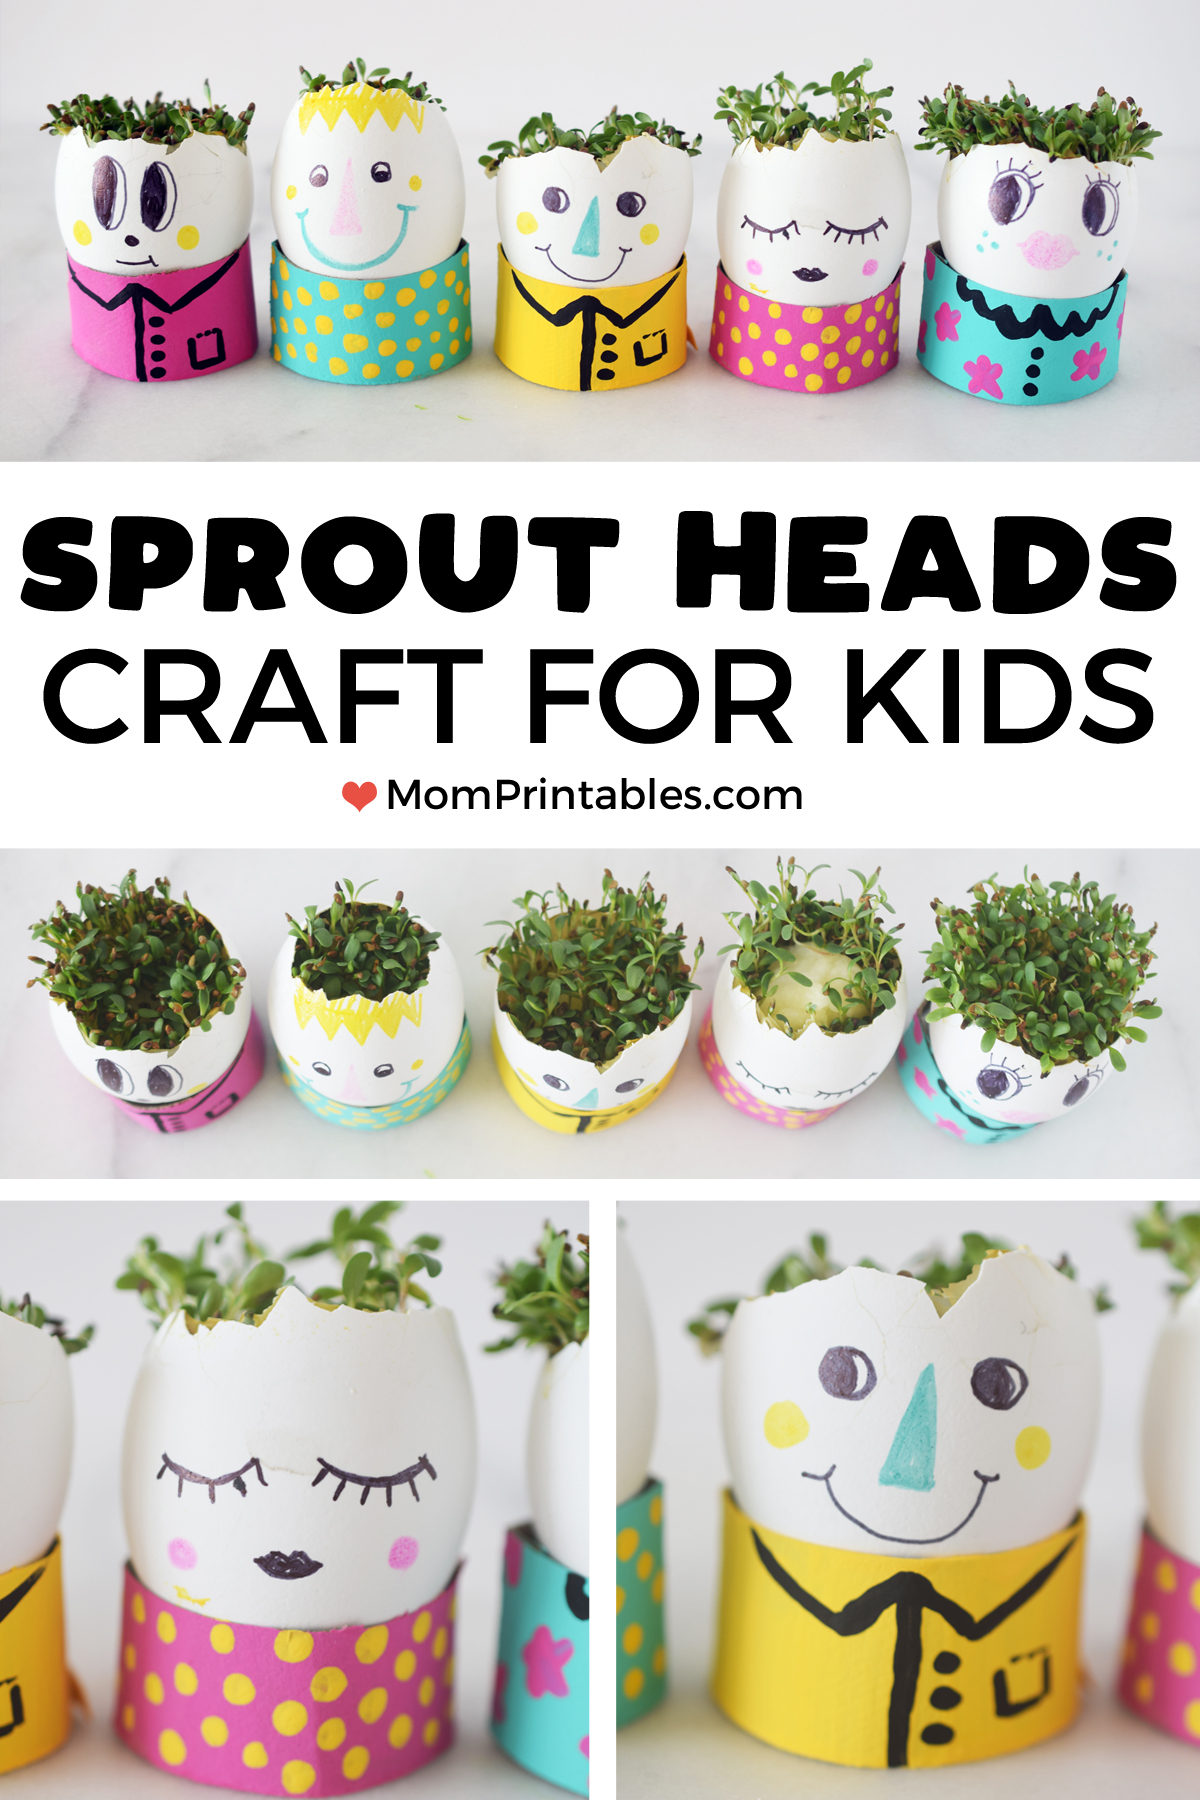 Craft   planters   people   haircut   art   hard boiled   gluten free   recipes   easter   for kids   egg sprouts   grass head   cress egg head   kids activity   kids craft   kids science    #kidscraft #science #toddler #preschool #EggHead #plants